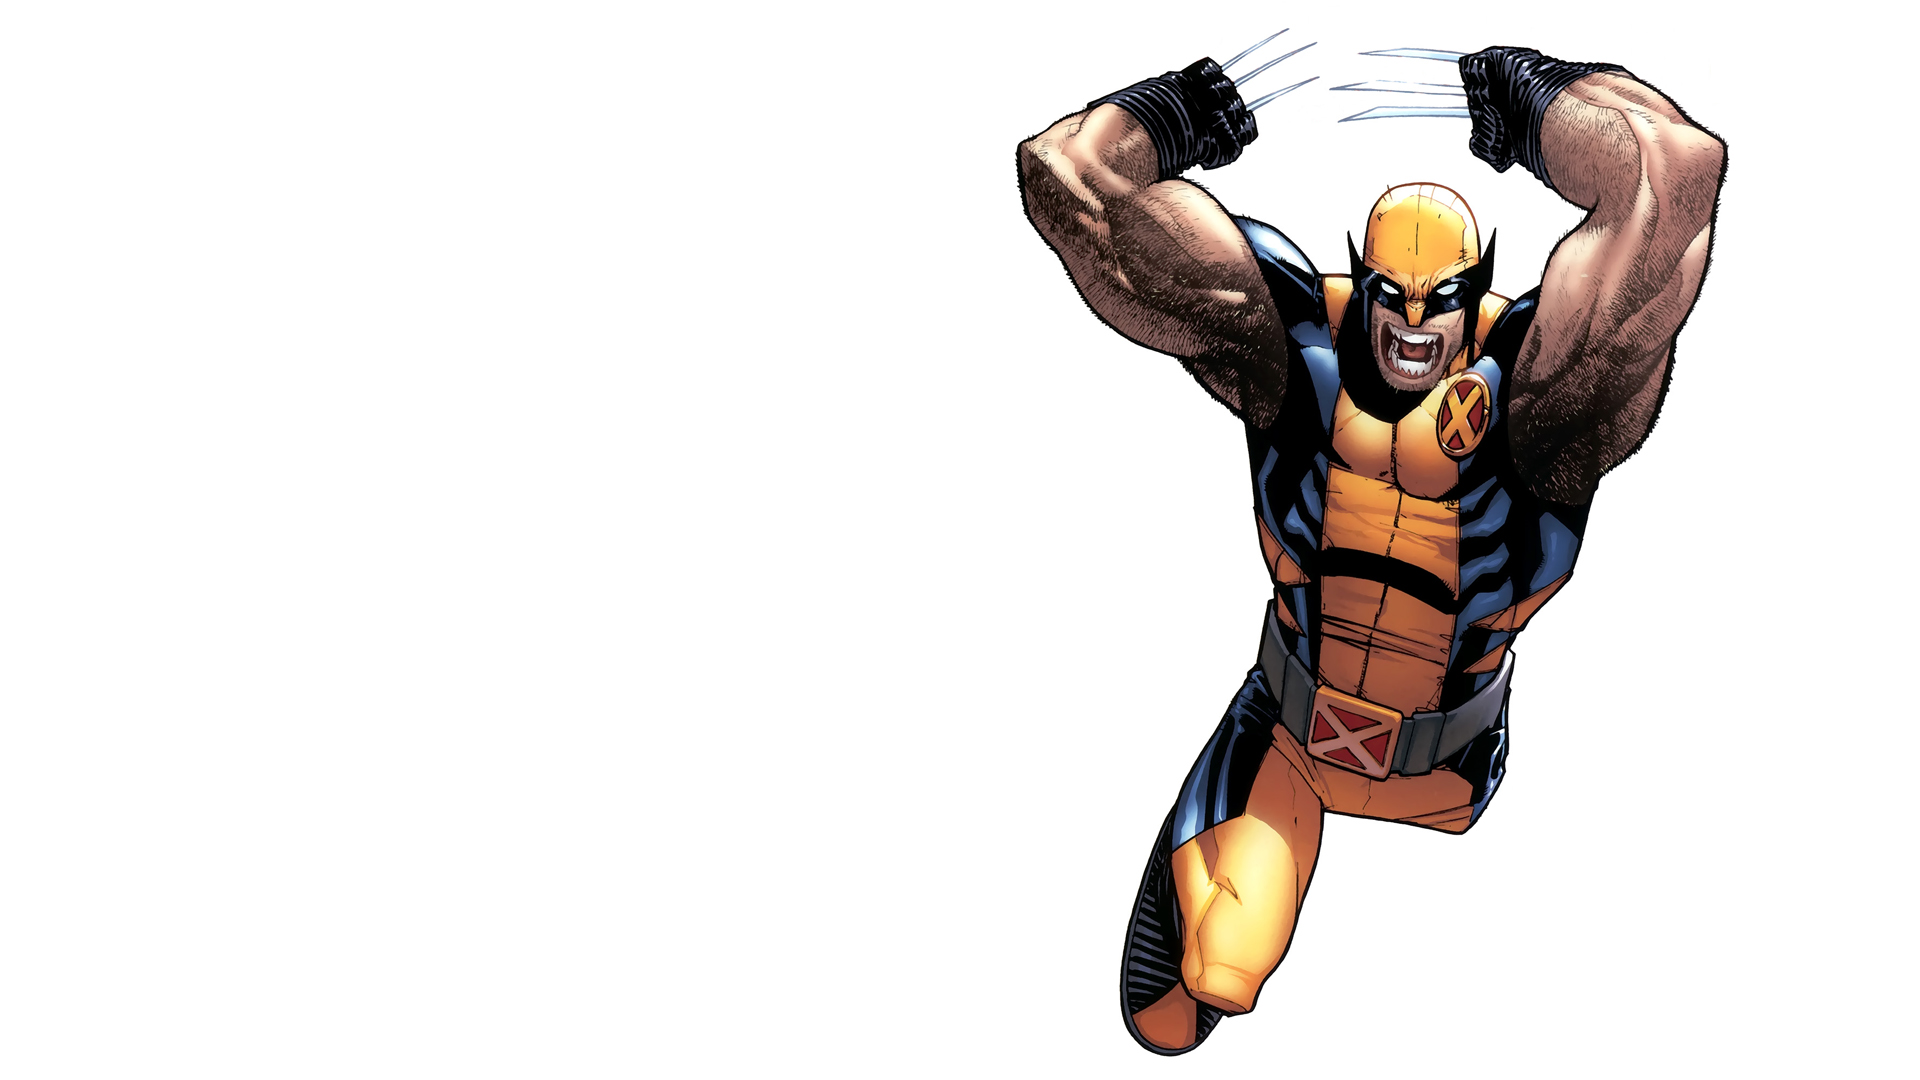 Wolverine Marvel Wallpaper 1920x1080 Wolverine Marvel Comics 1920x1080